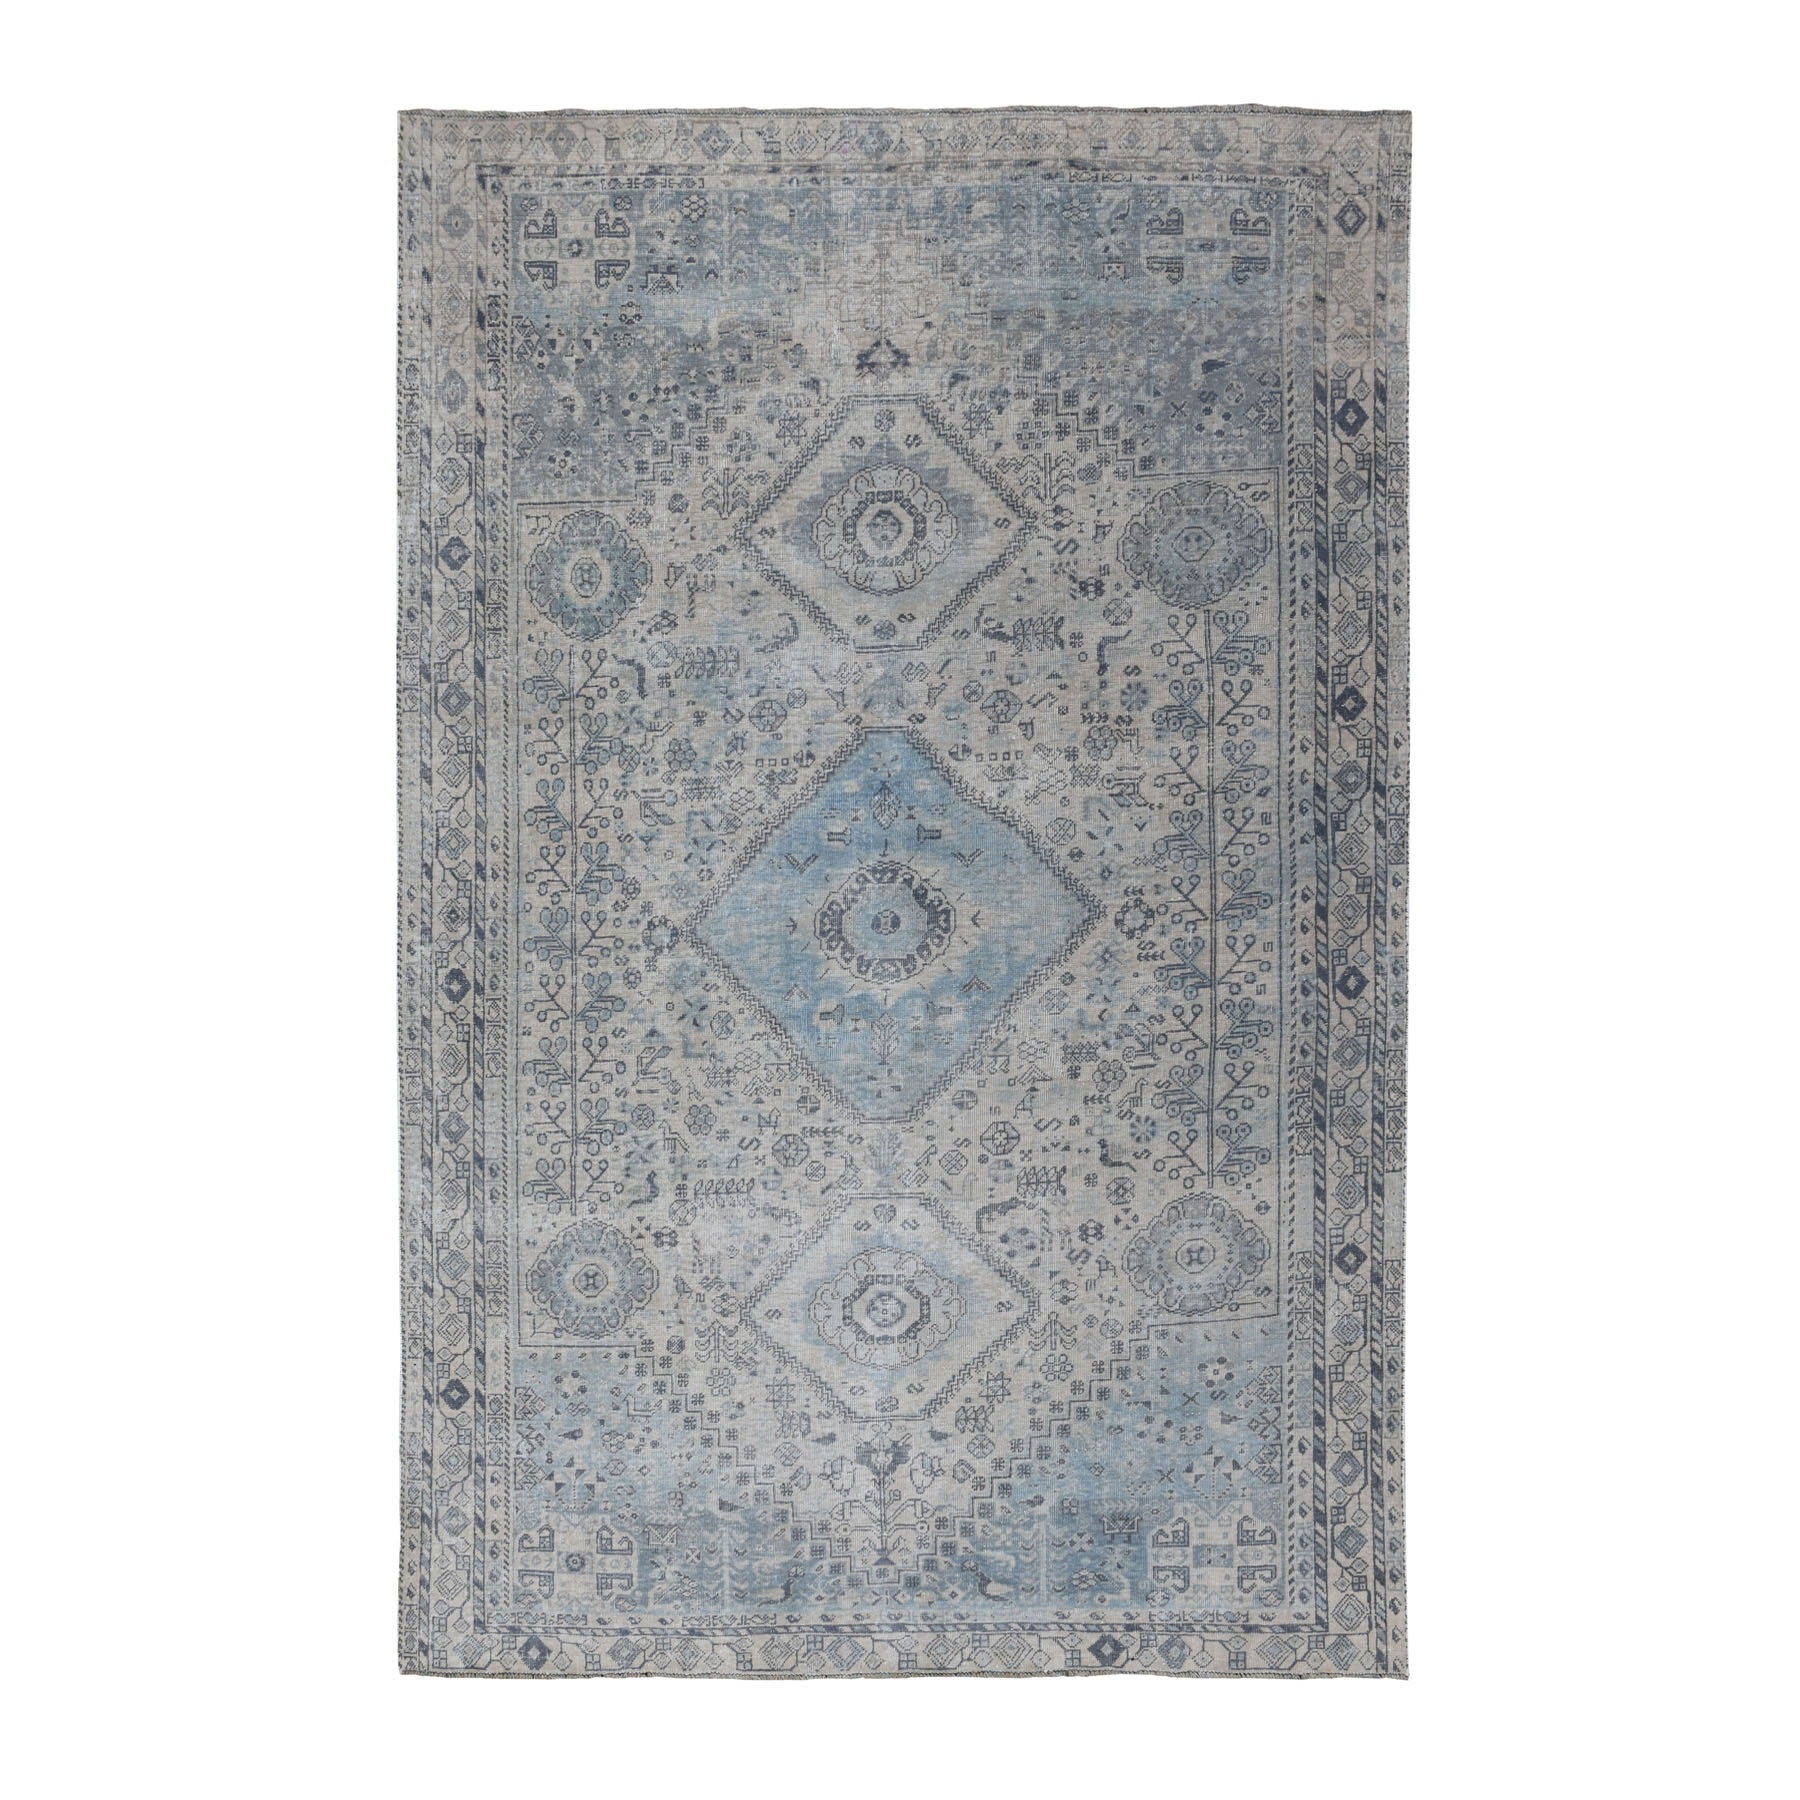 "6'3""x8'8"" Vintage And Worn Down Distressed Colors Persian Shiraz Hand Knotted Bohemian Rug"